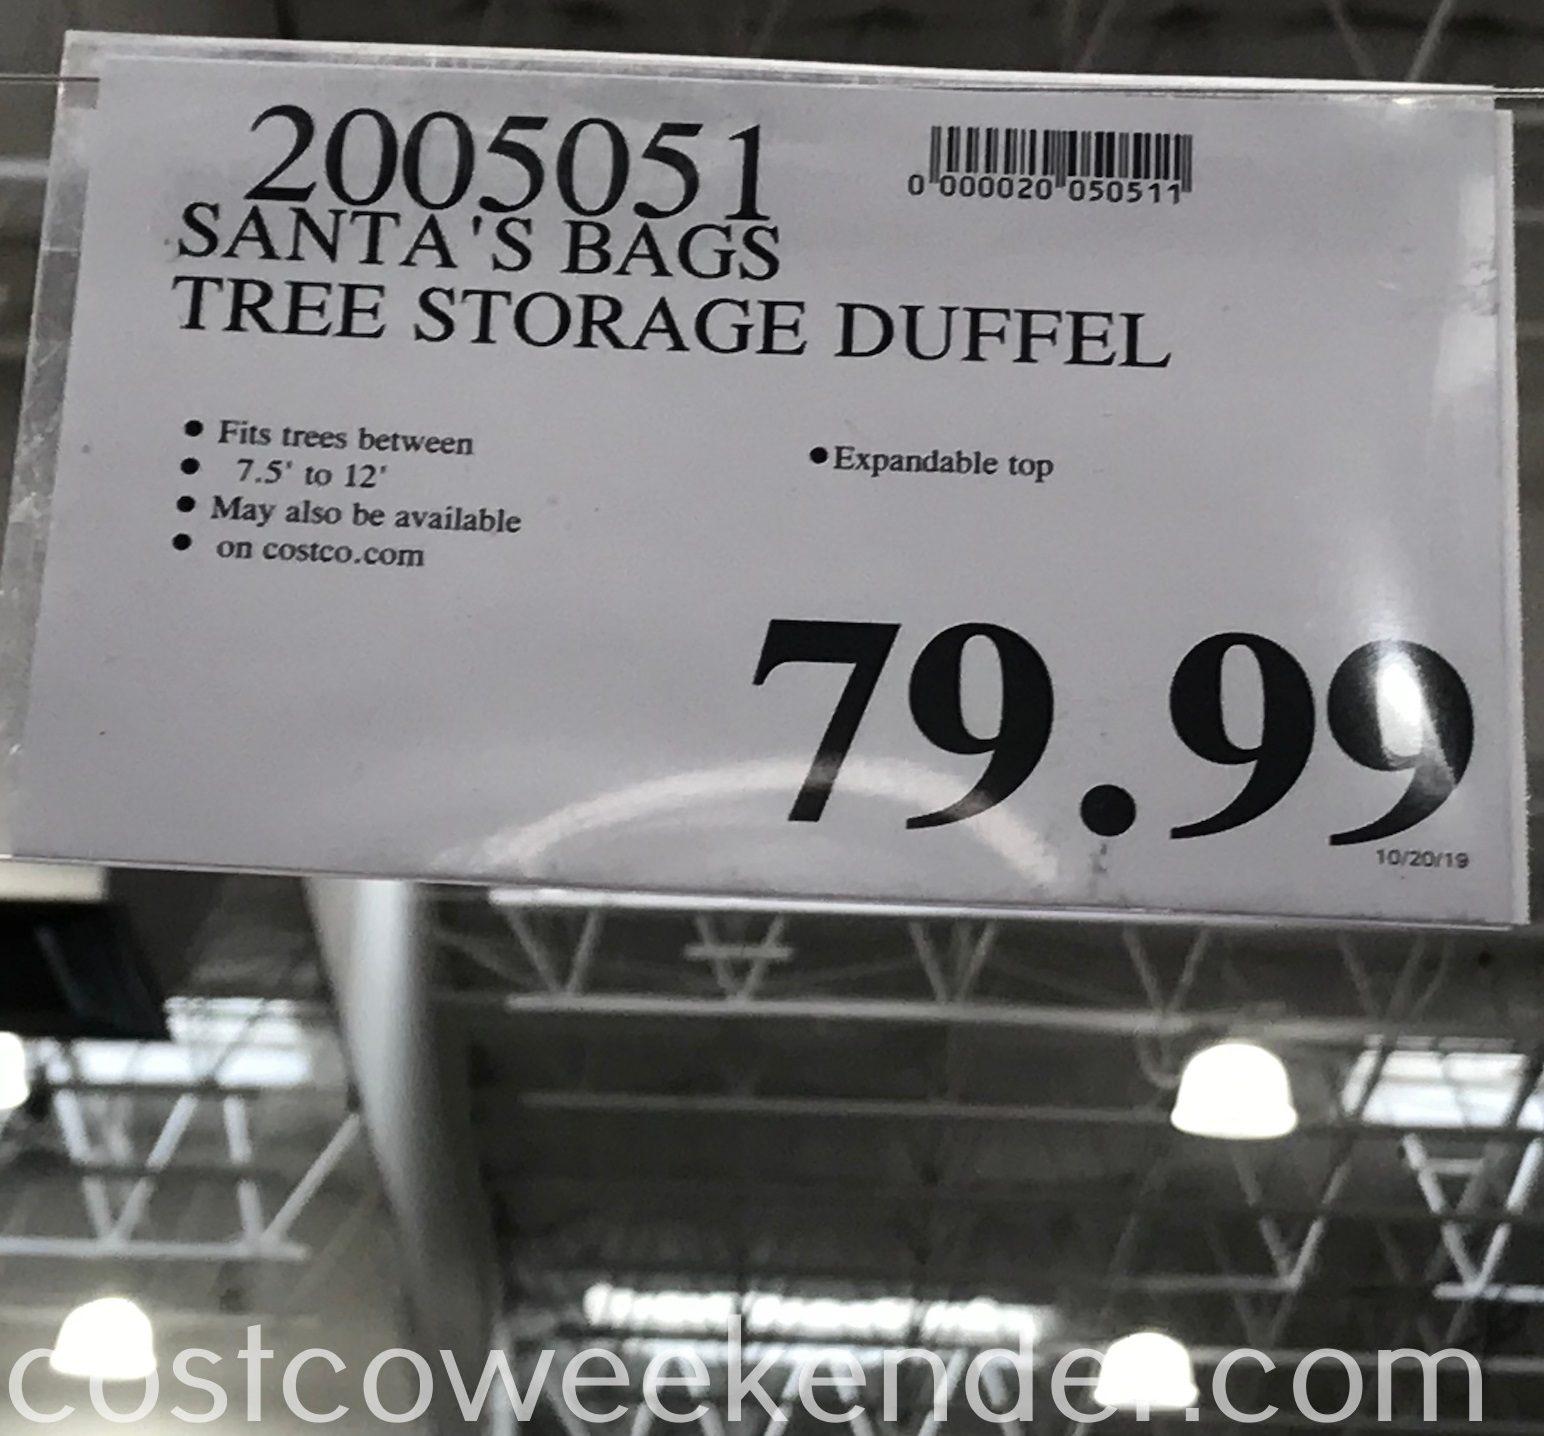 Costco 2005051 - Deal for the Santa's Bags Tree Storage Duffel at Costco